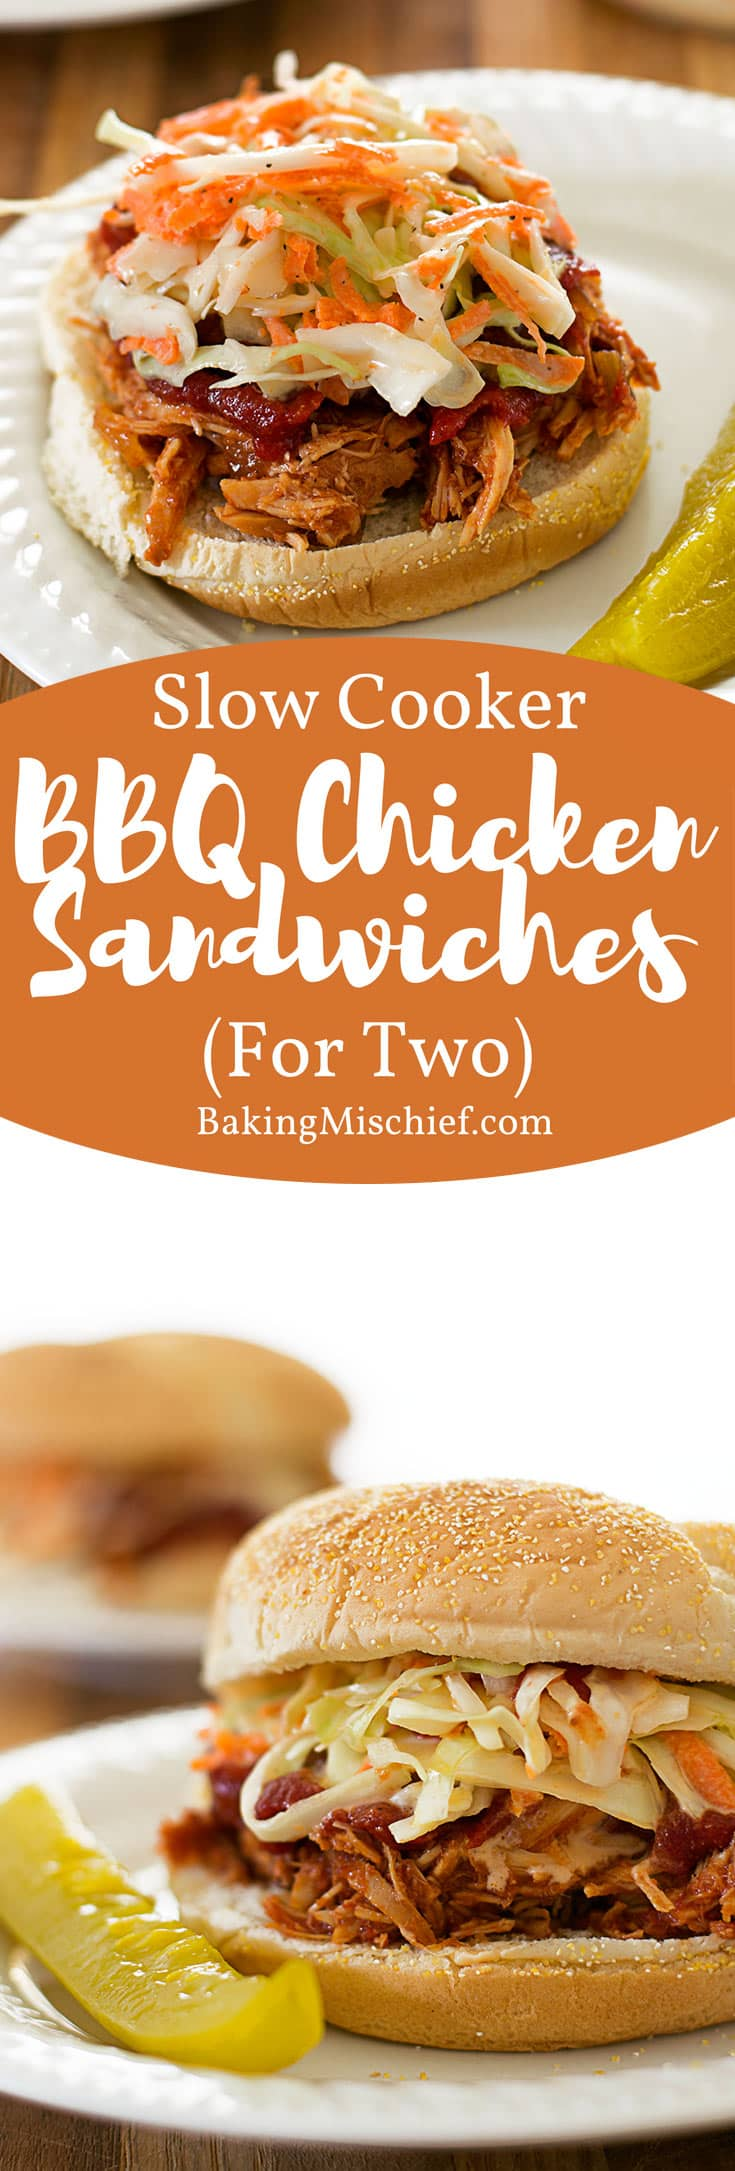 Slow cooker BBQ chicken sandwiches for two with a sweet and tangy ...